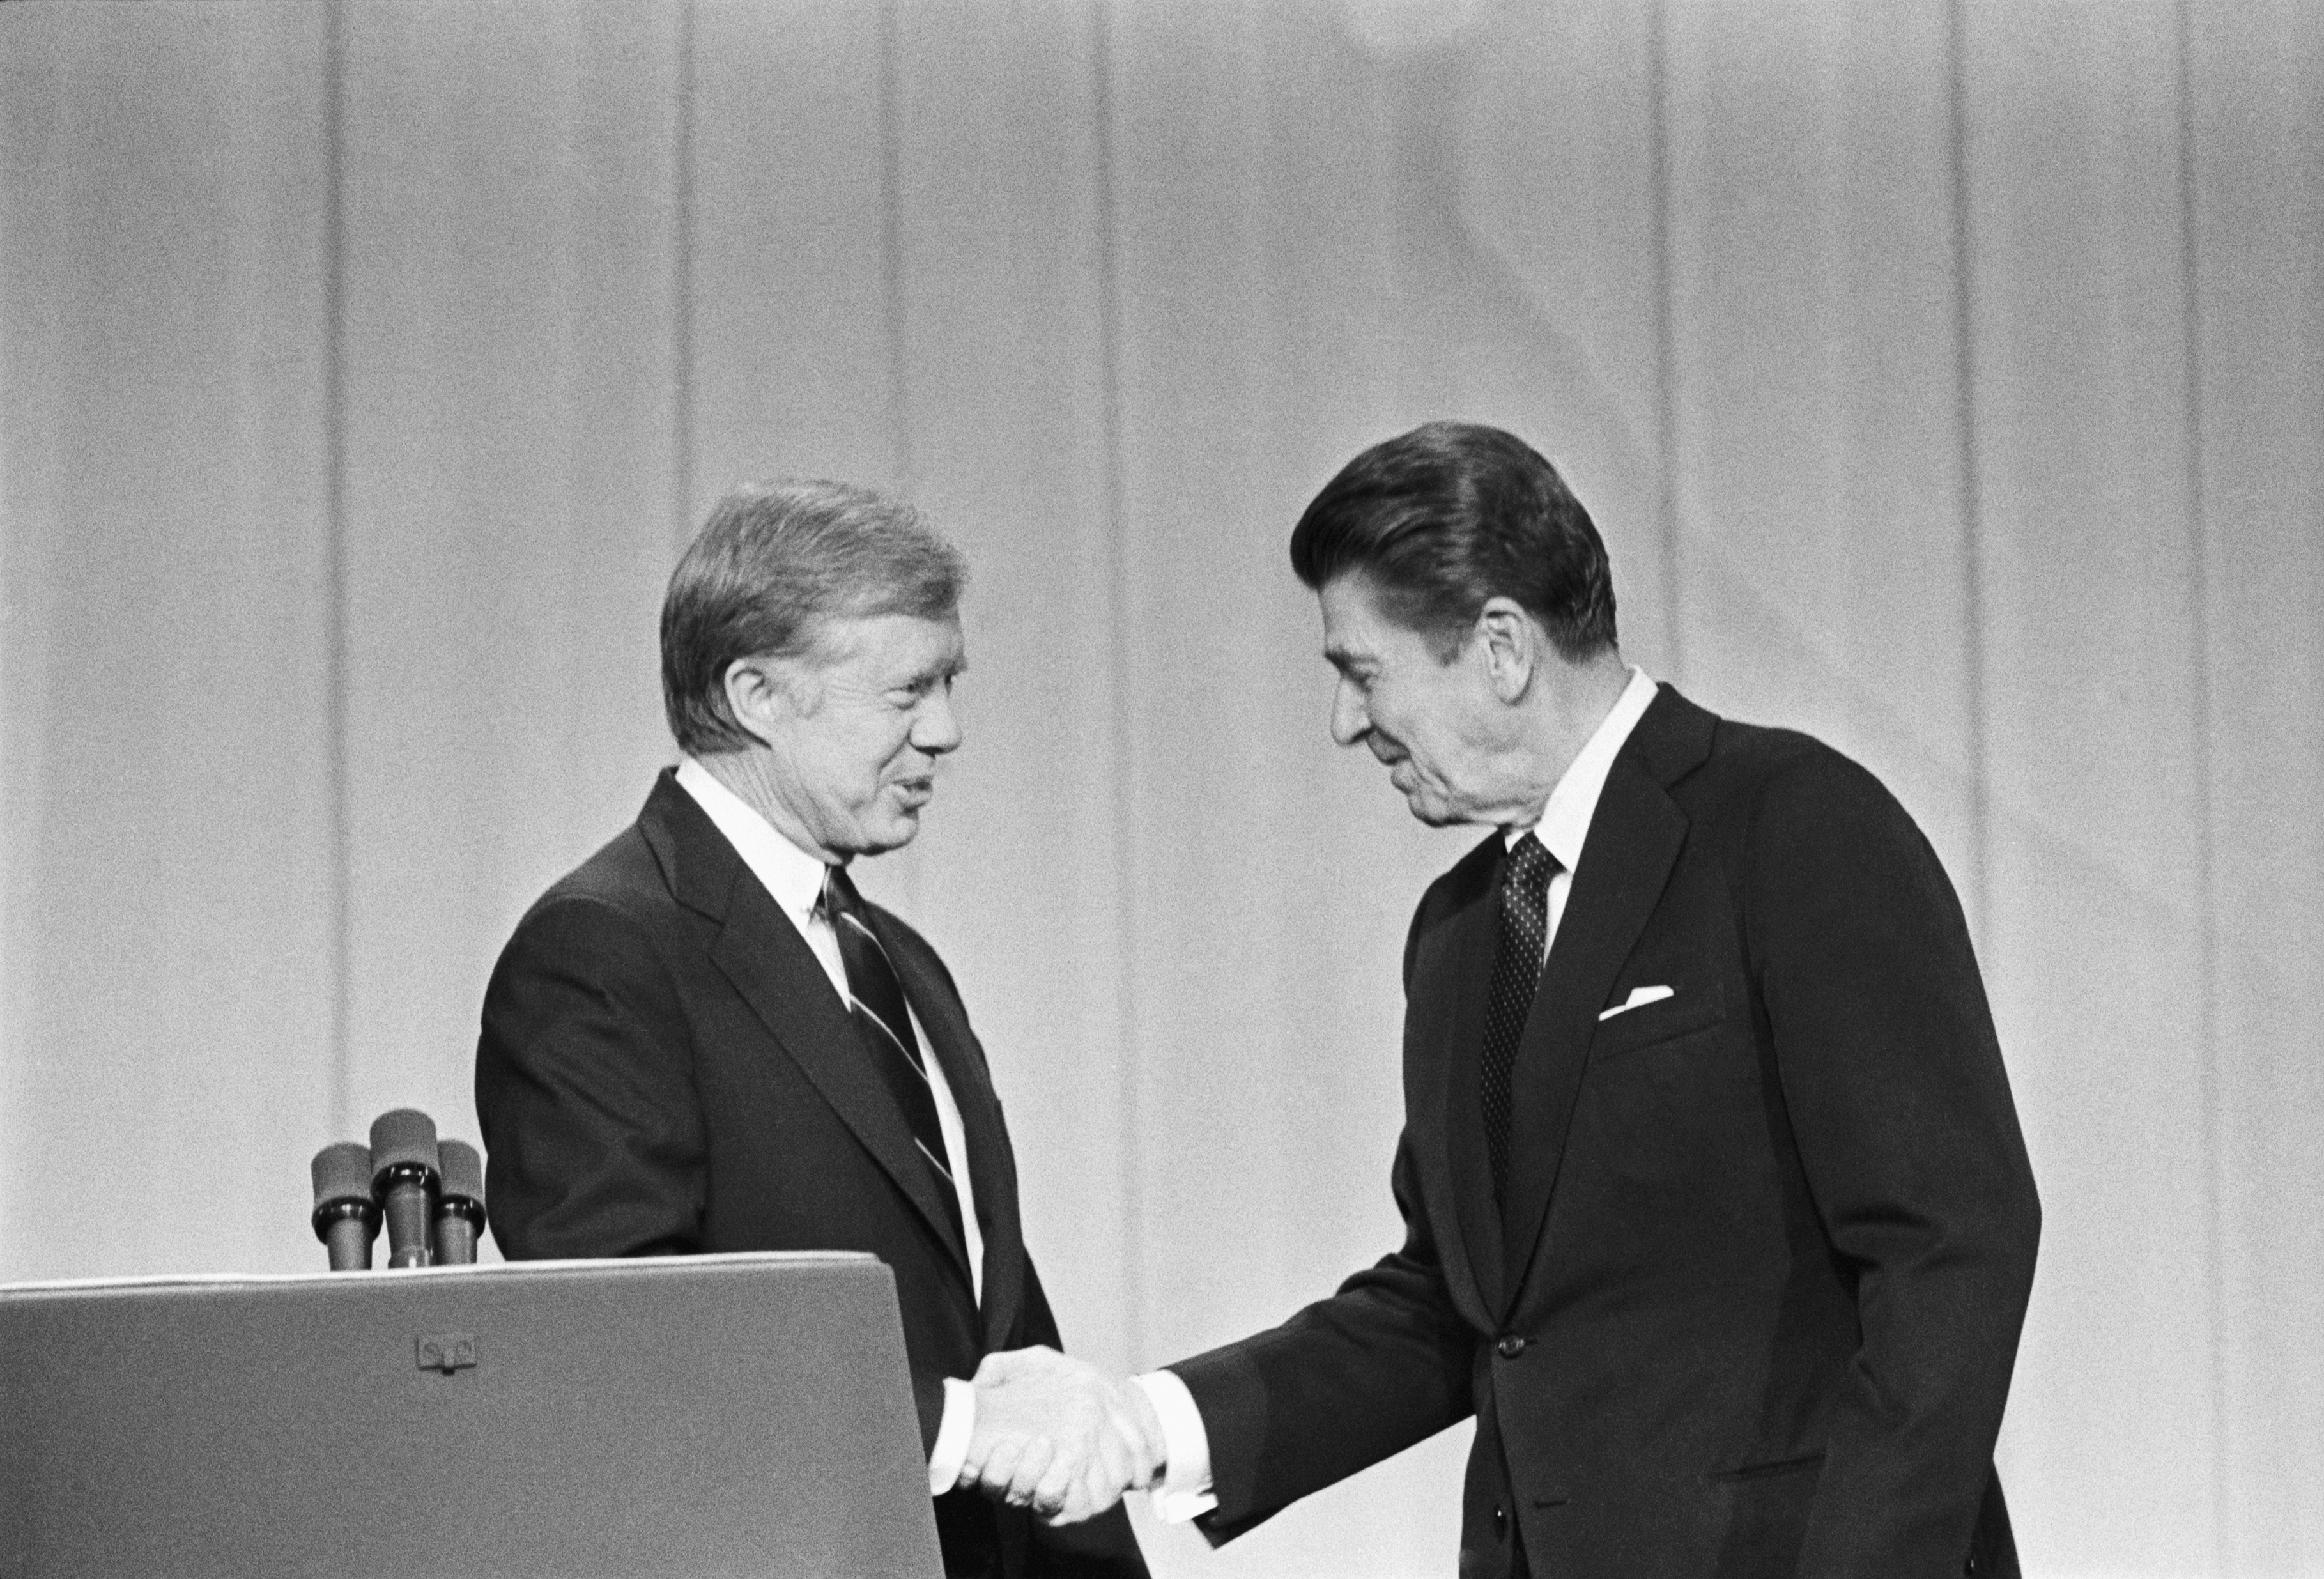 President Jimmy Carter and his Republican challenger, Ronald Reagan, shake hands as they greet one another before their debate on the stage of the Music Hall in Cleveland, Ohio.